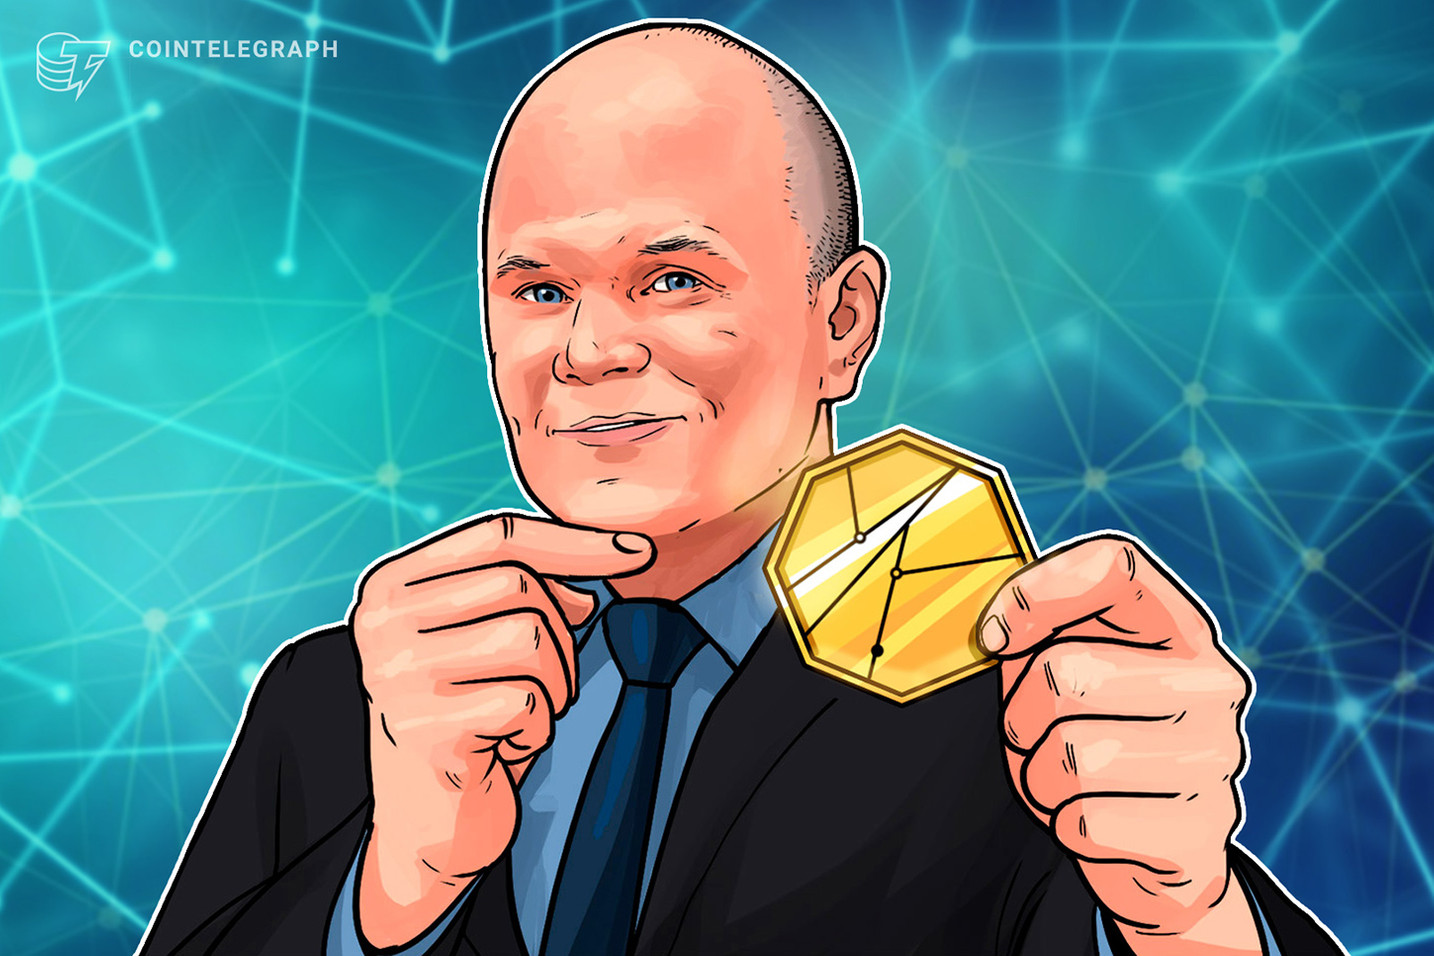 Echoing Cuban, Novogratz says DeFi should 'play by the rules', or 'pay the piper' later